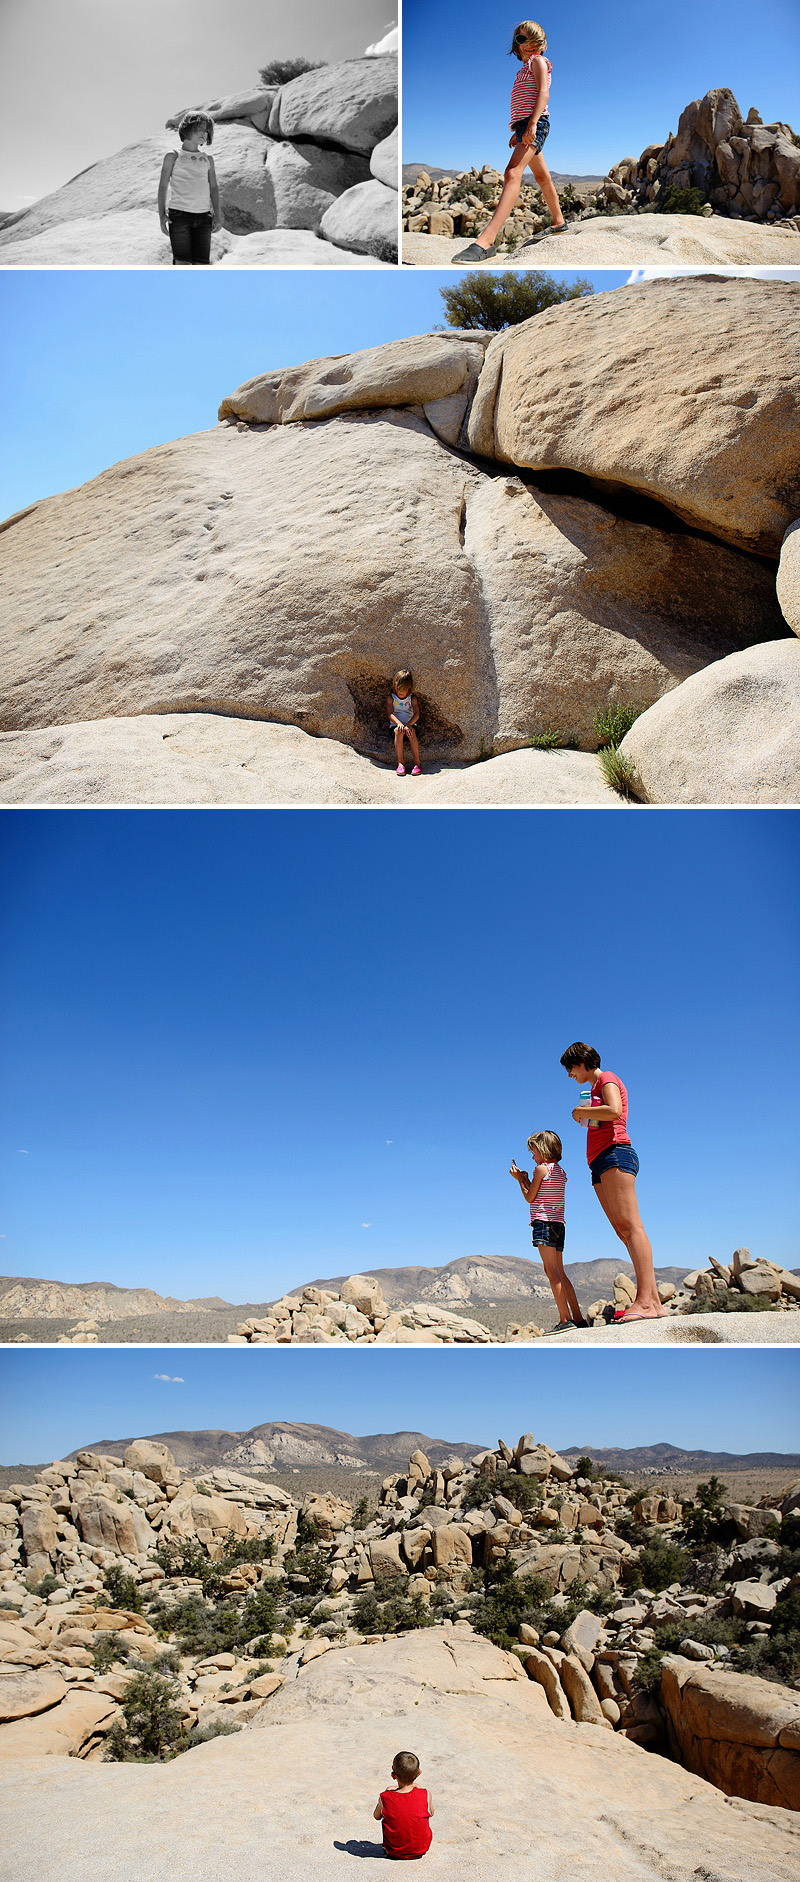 kids climing rocks in joshua tree national park